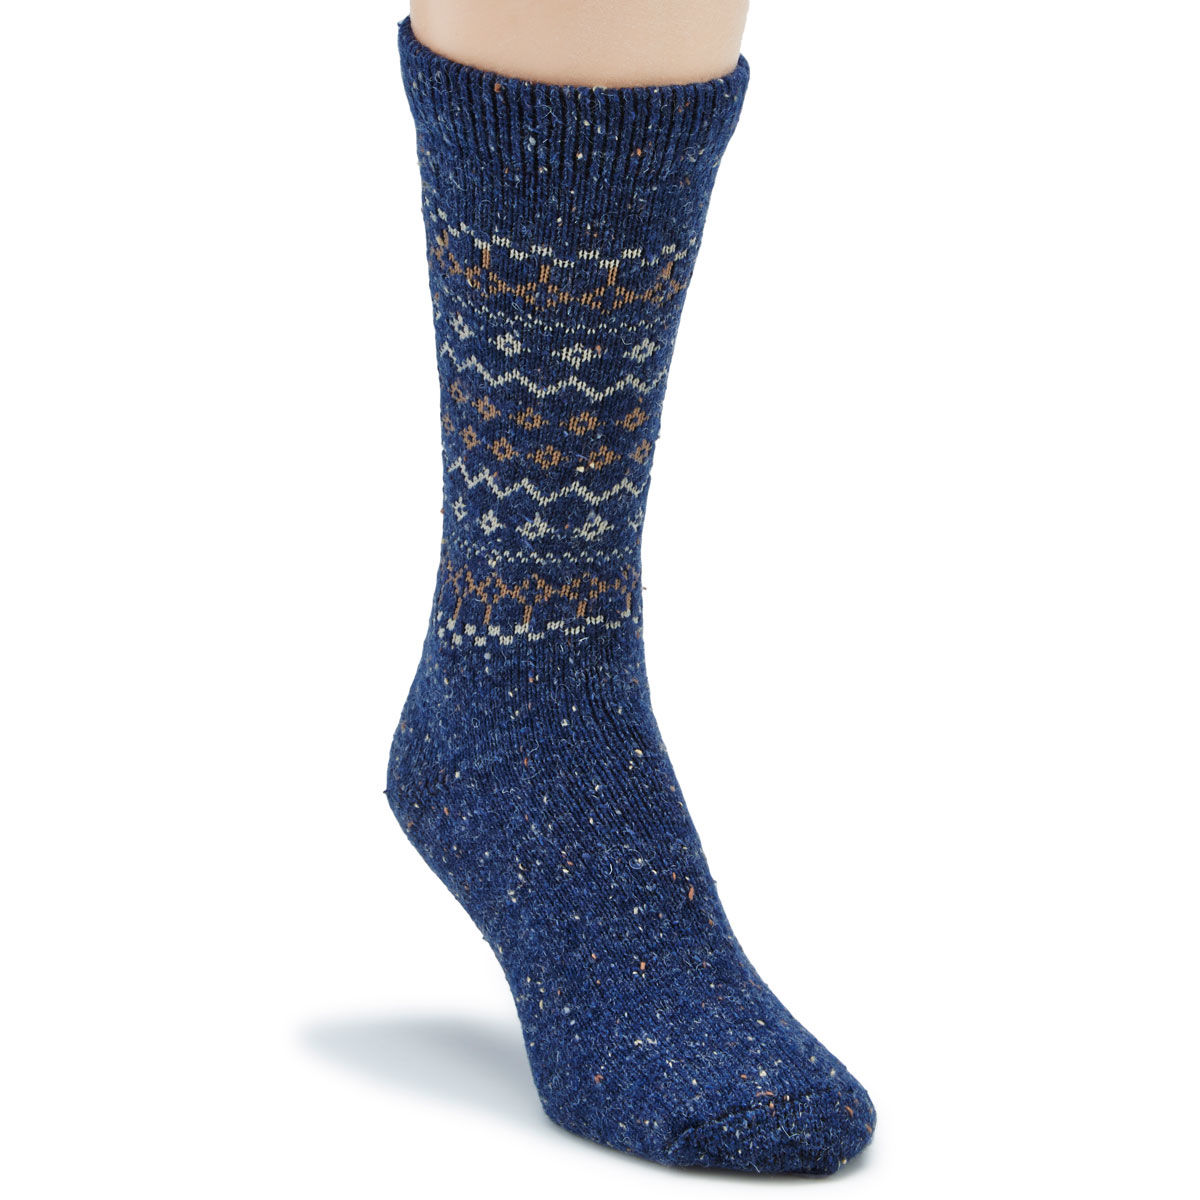 Carolina Hosiery Women's Retro Heavyweight Crew Socks - Blue, M